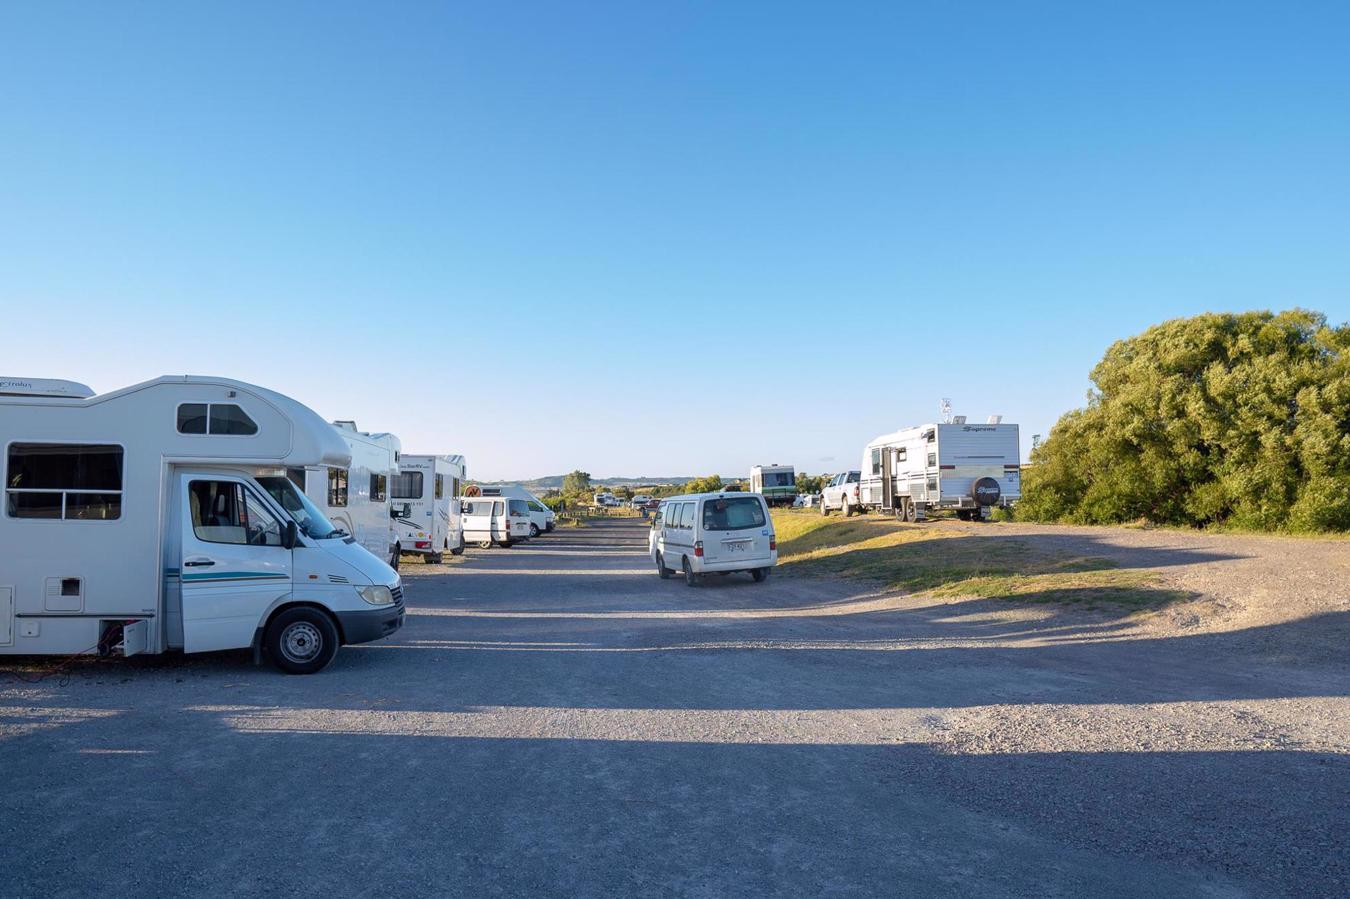 Self contained van NZ and freedom camping non self contained